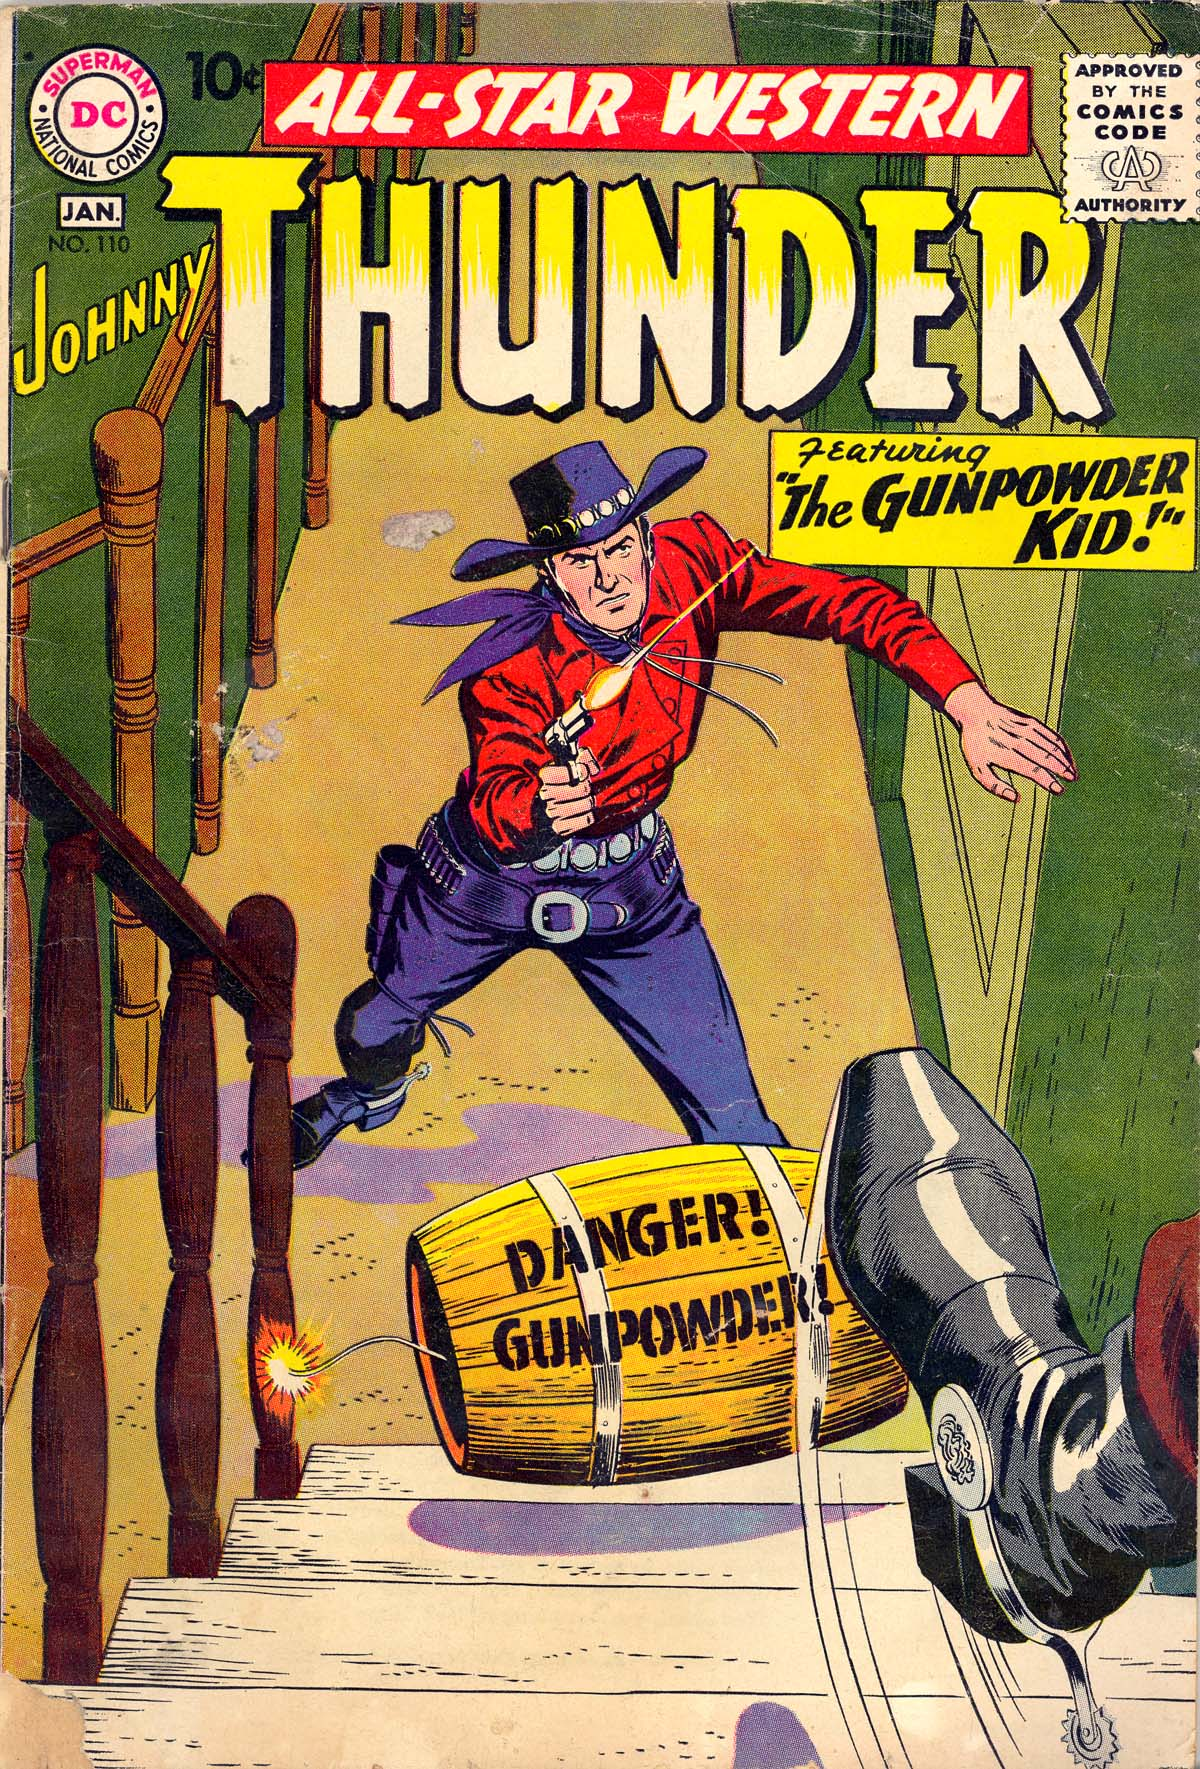 Read online All-Star Western (1951) comic -  Issue #110 - 1